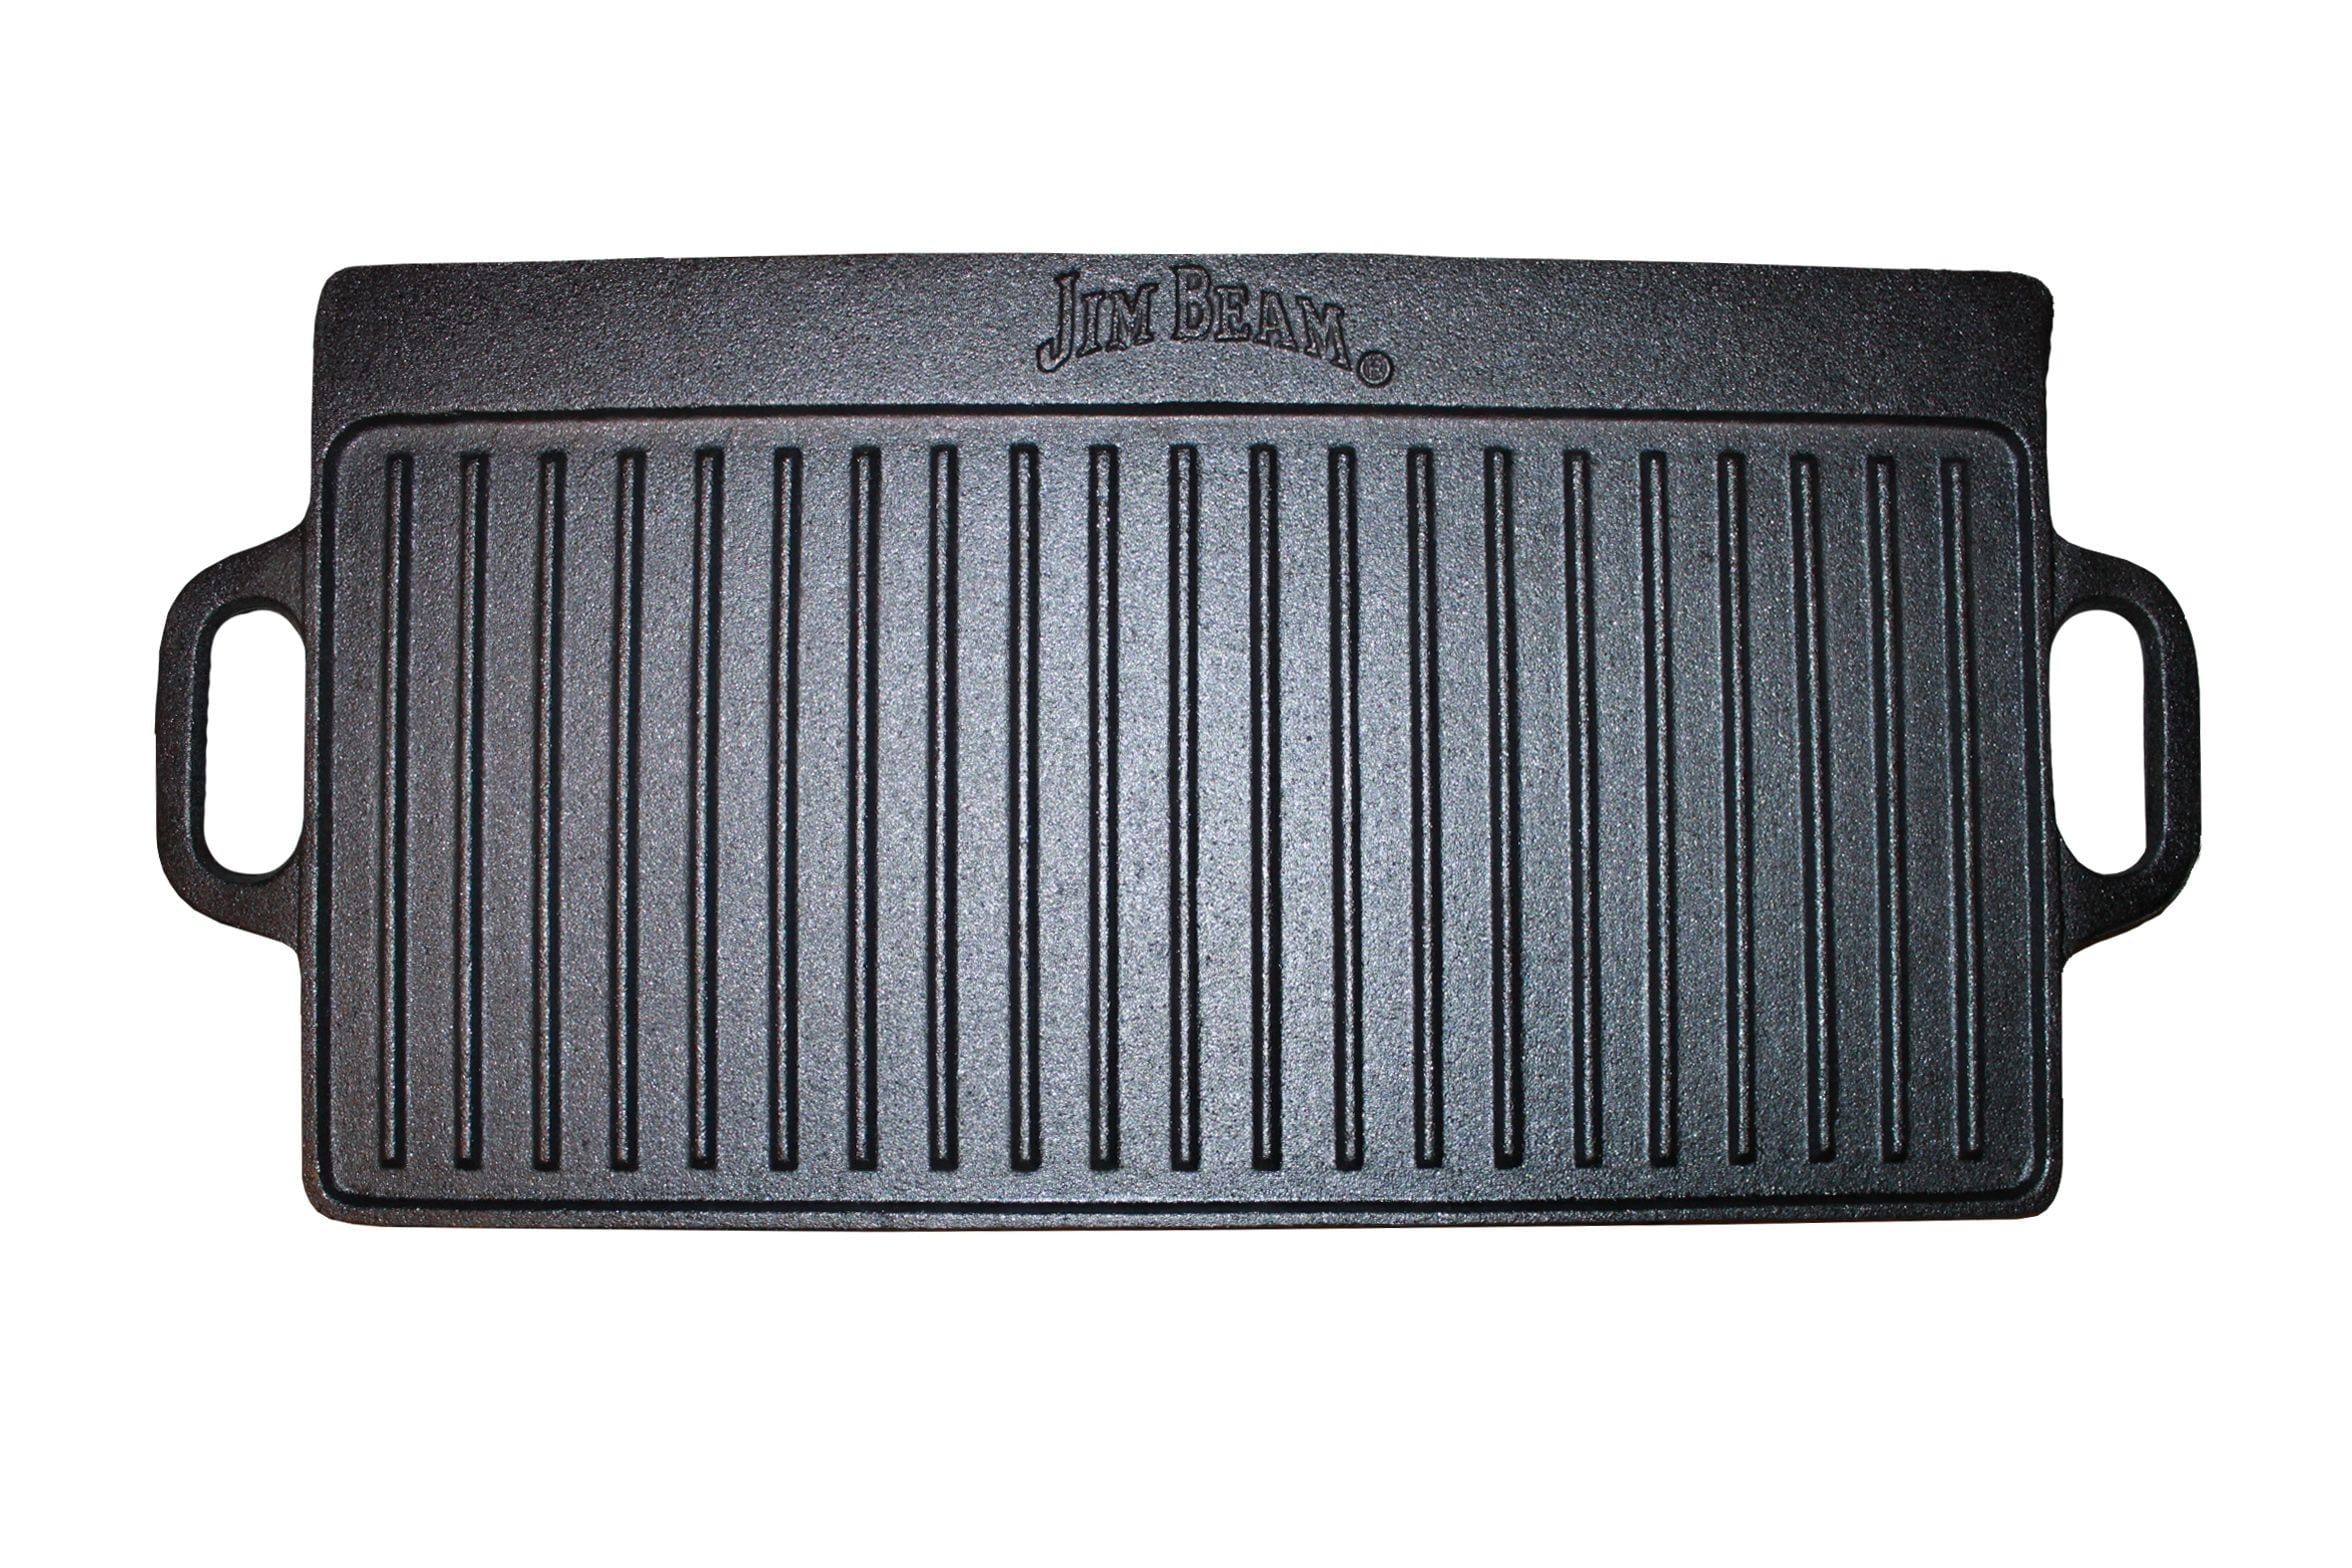 Jim Beam Cast Iron Double Sided Reverisble Griddle